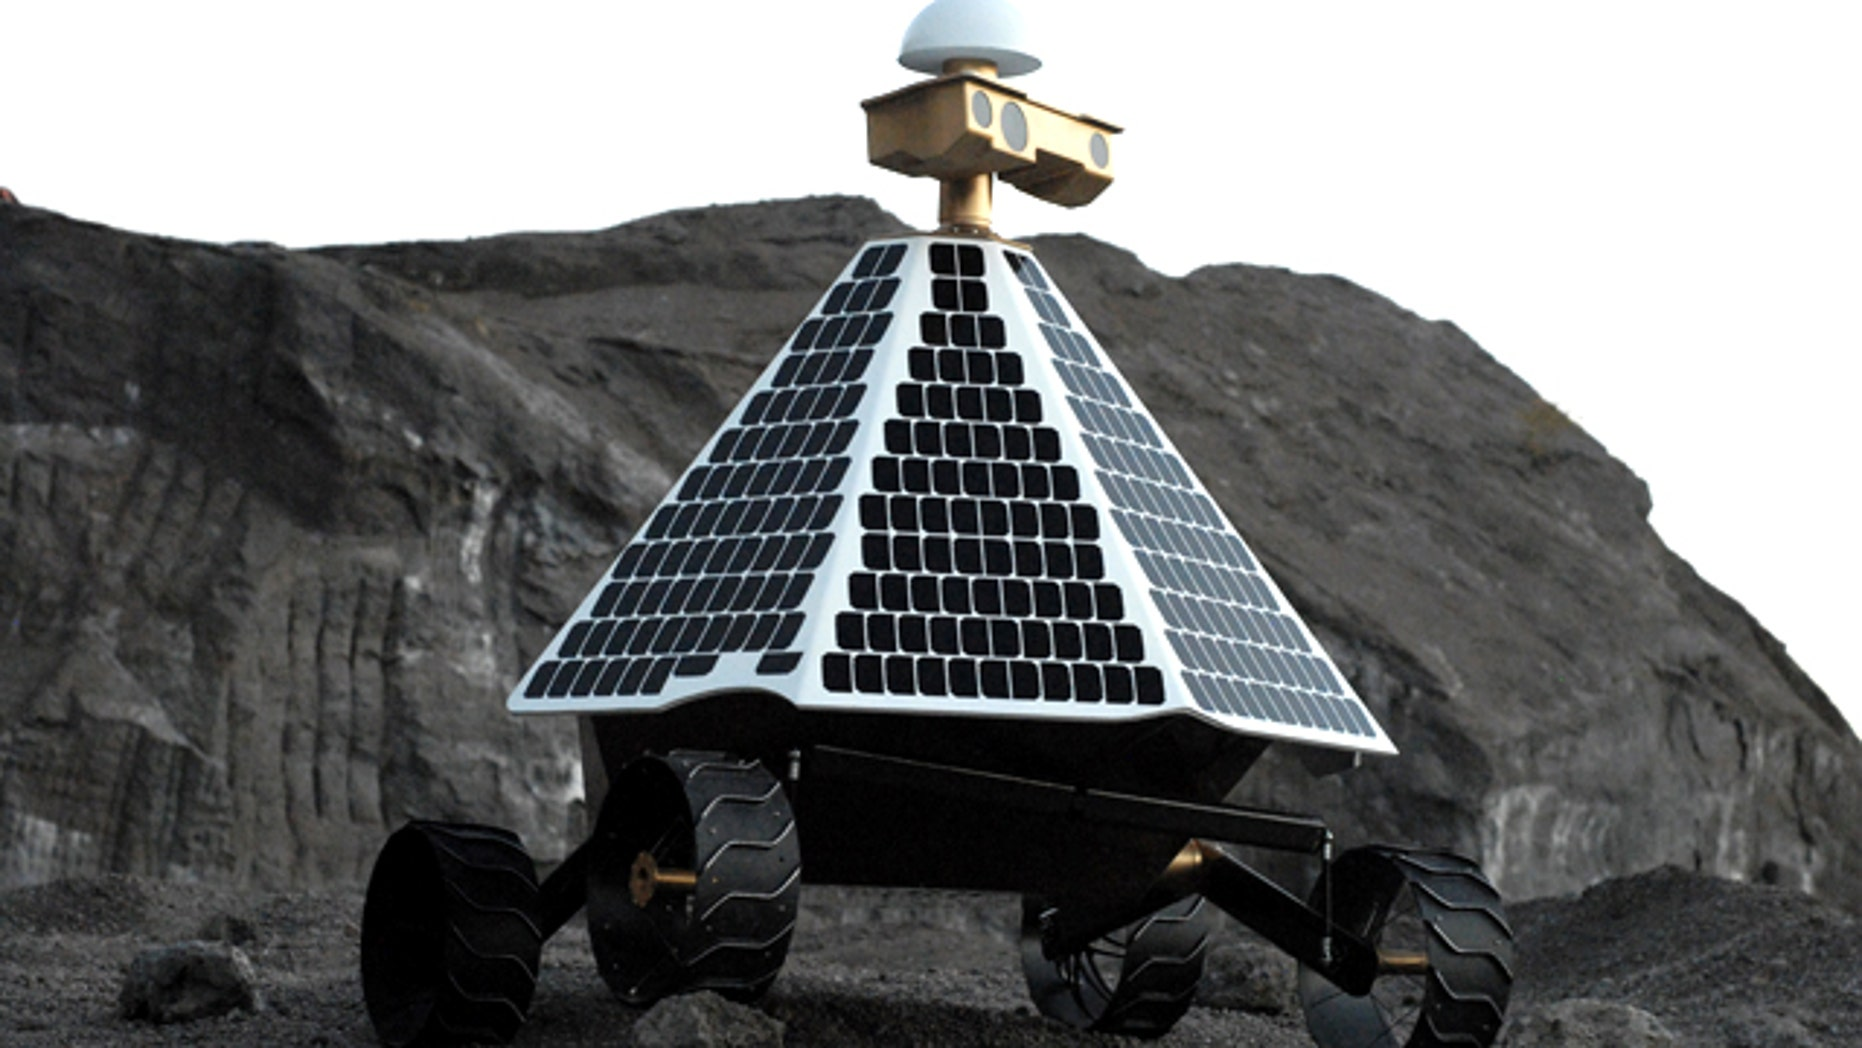 Astrobotic Technology's Red Rover, a lunar exploration vehicle that the company claims will be able to scout and drill for precious resources at the moon's poles.